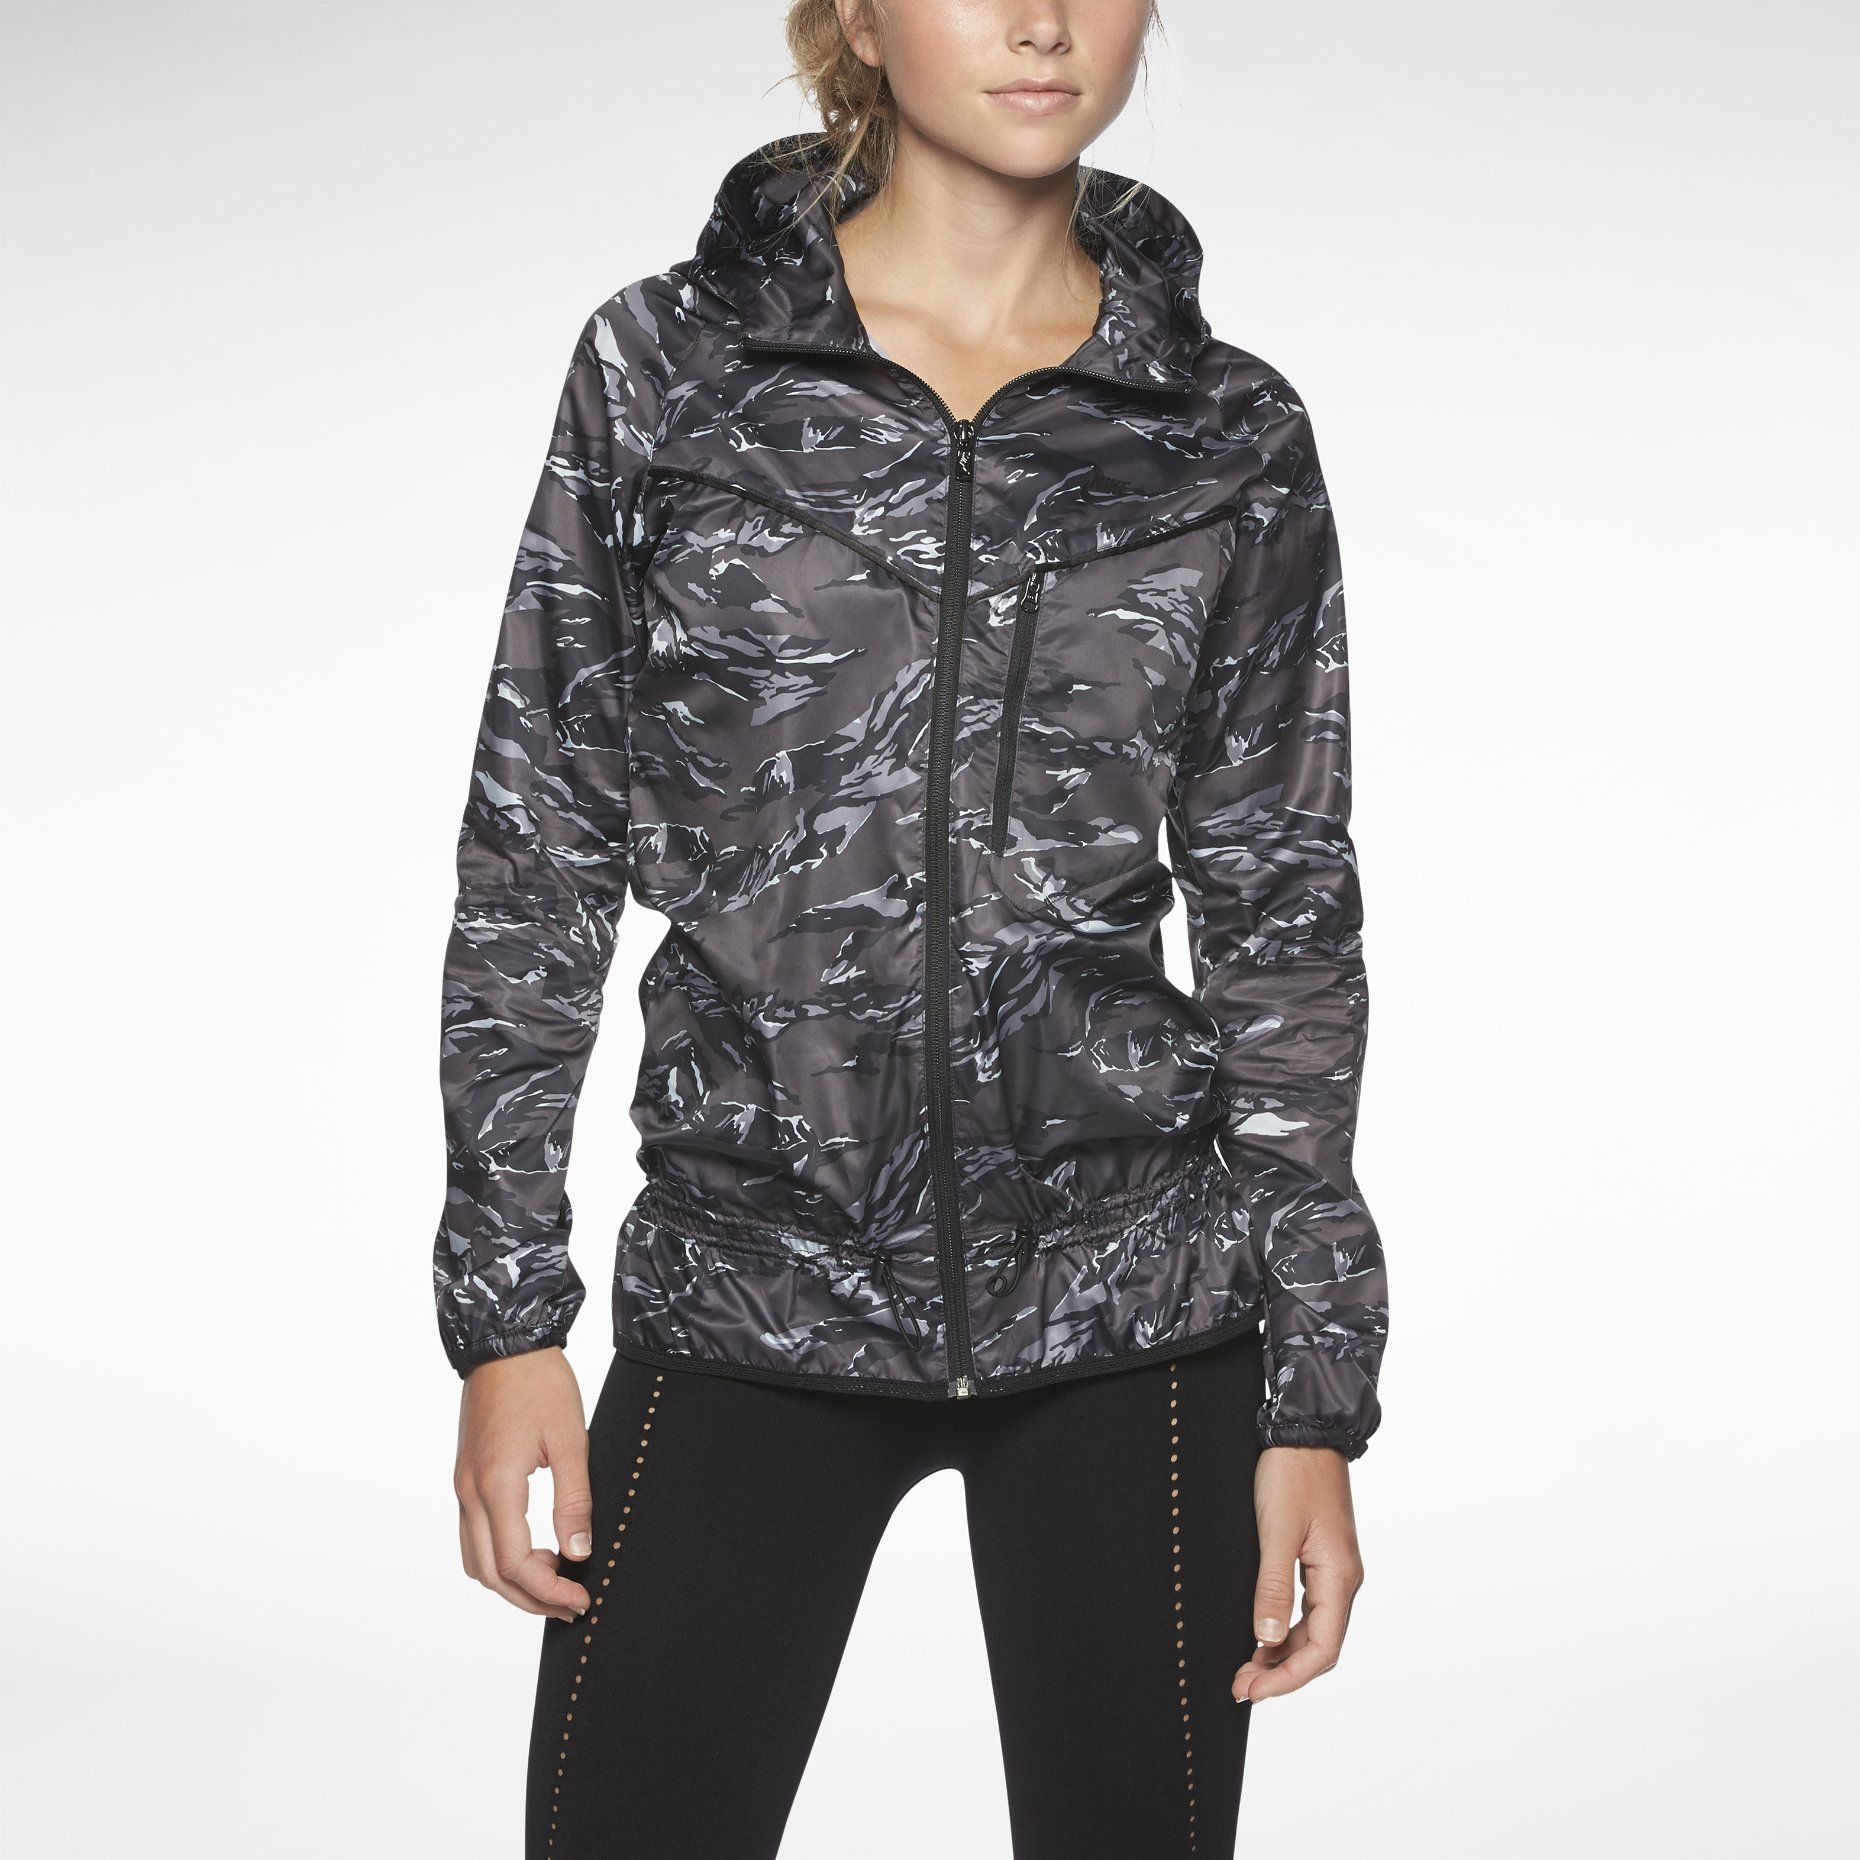 Nike Trail Jacket Women's Camouflage Store Packable rPzwWq7rT